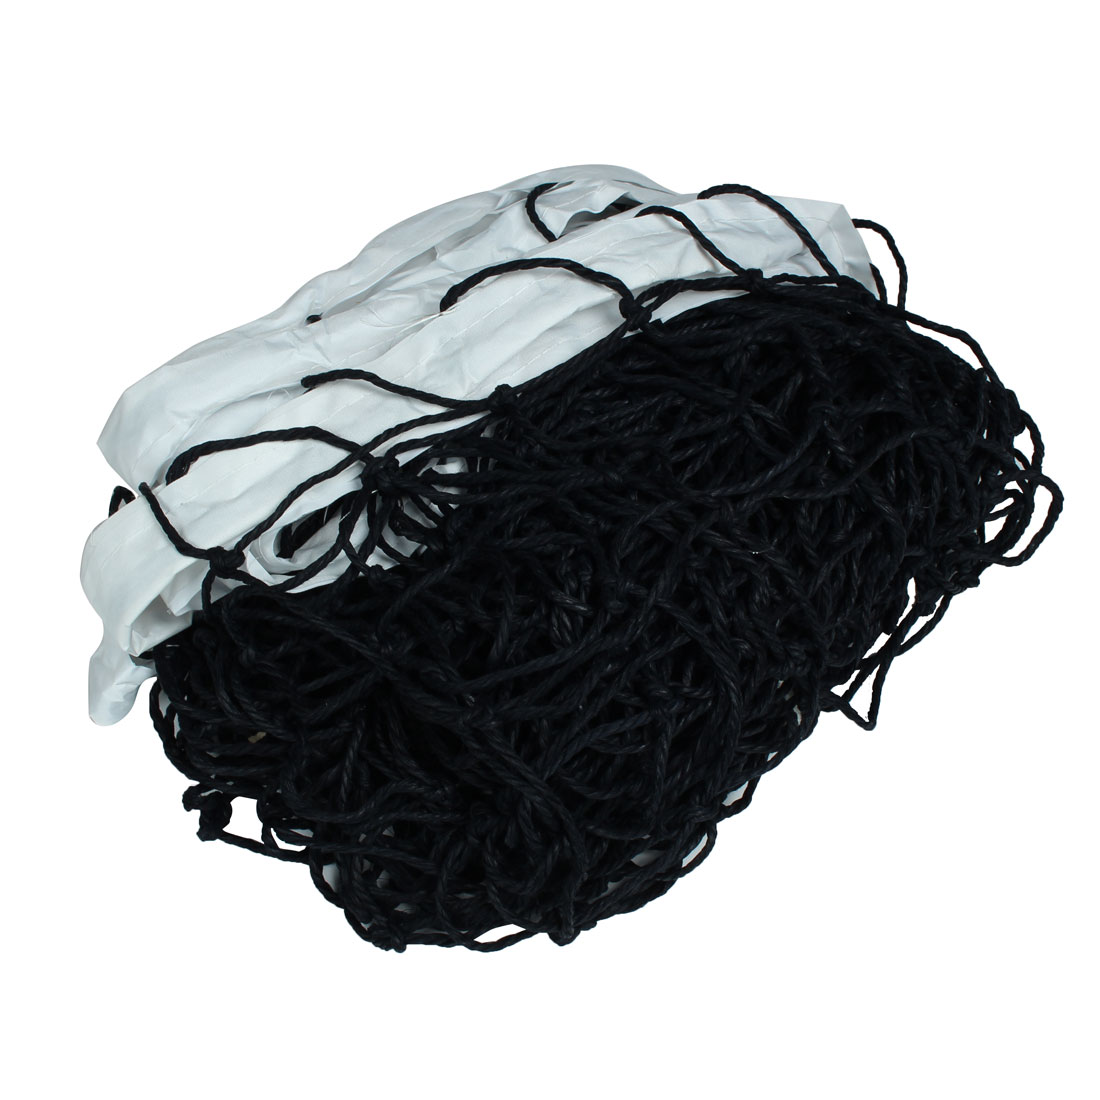 Match Competition International Volleyball Net Netting Replacement Sports Appliance